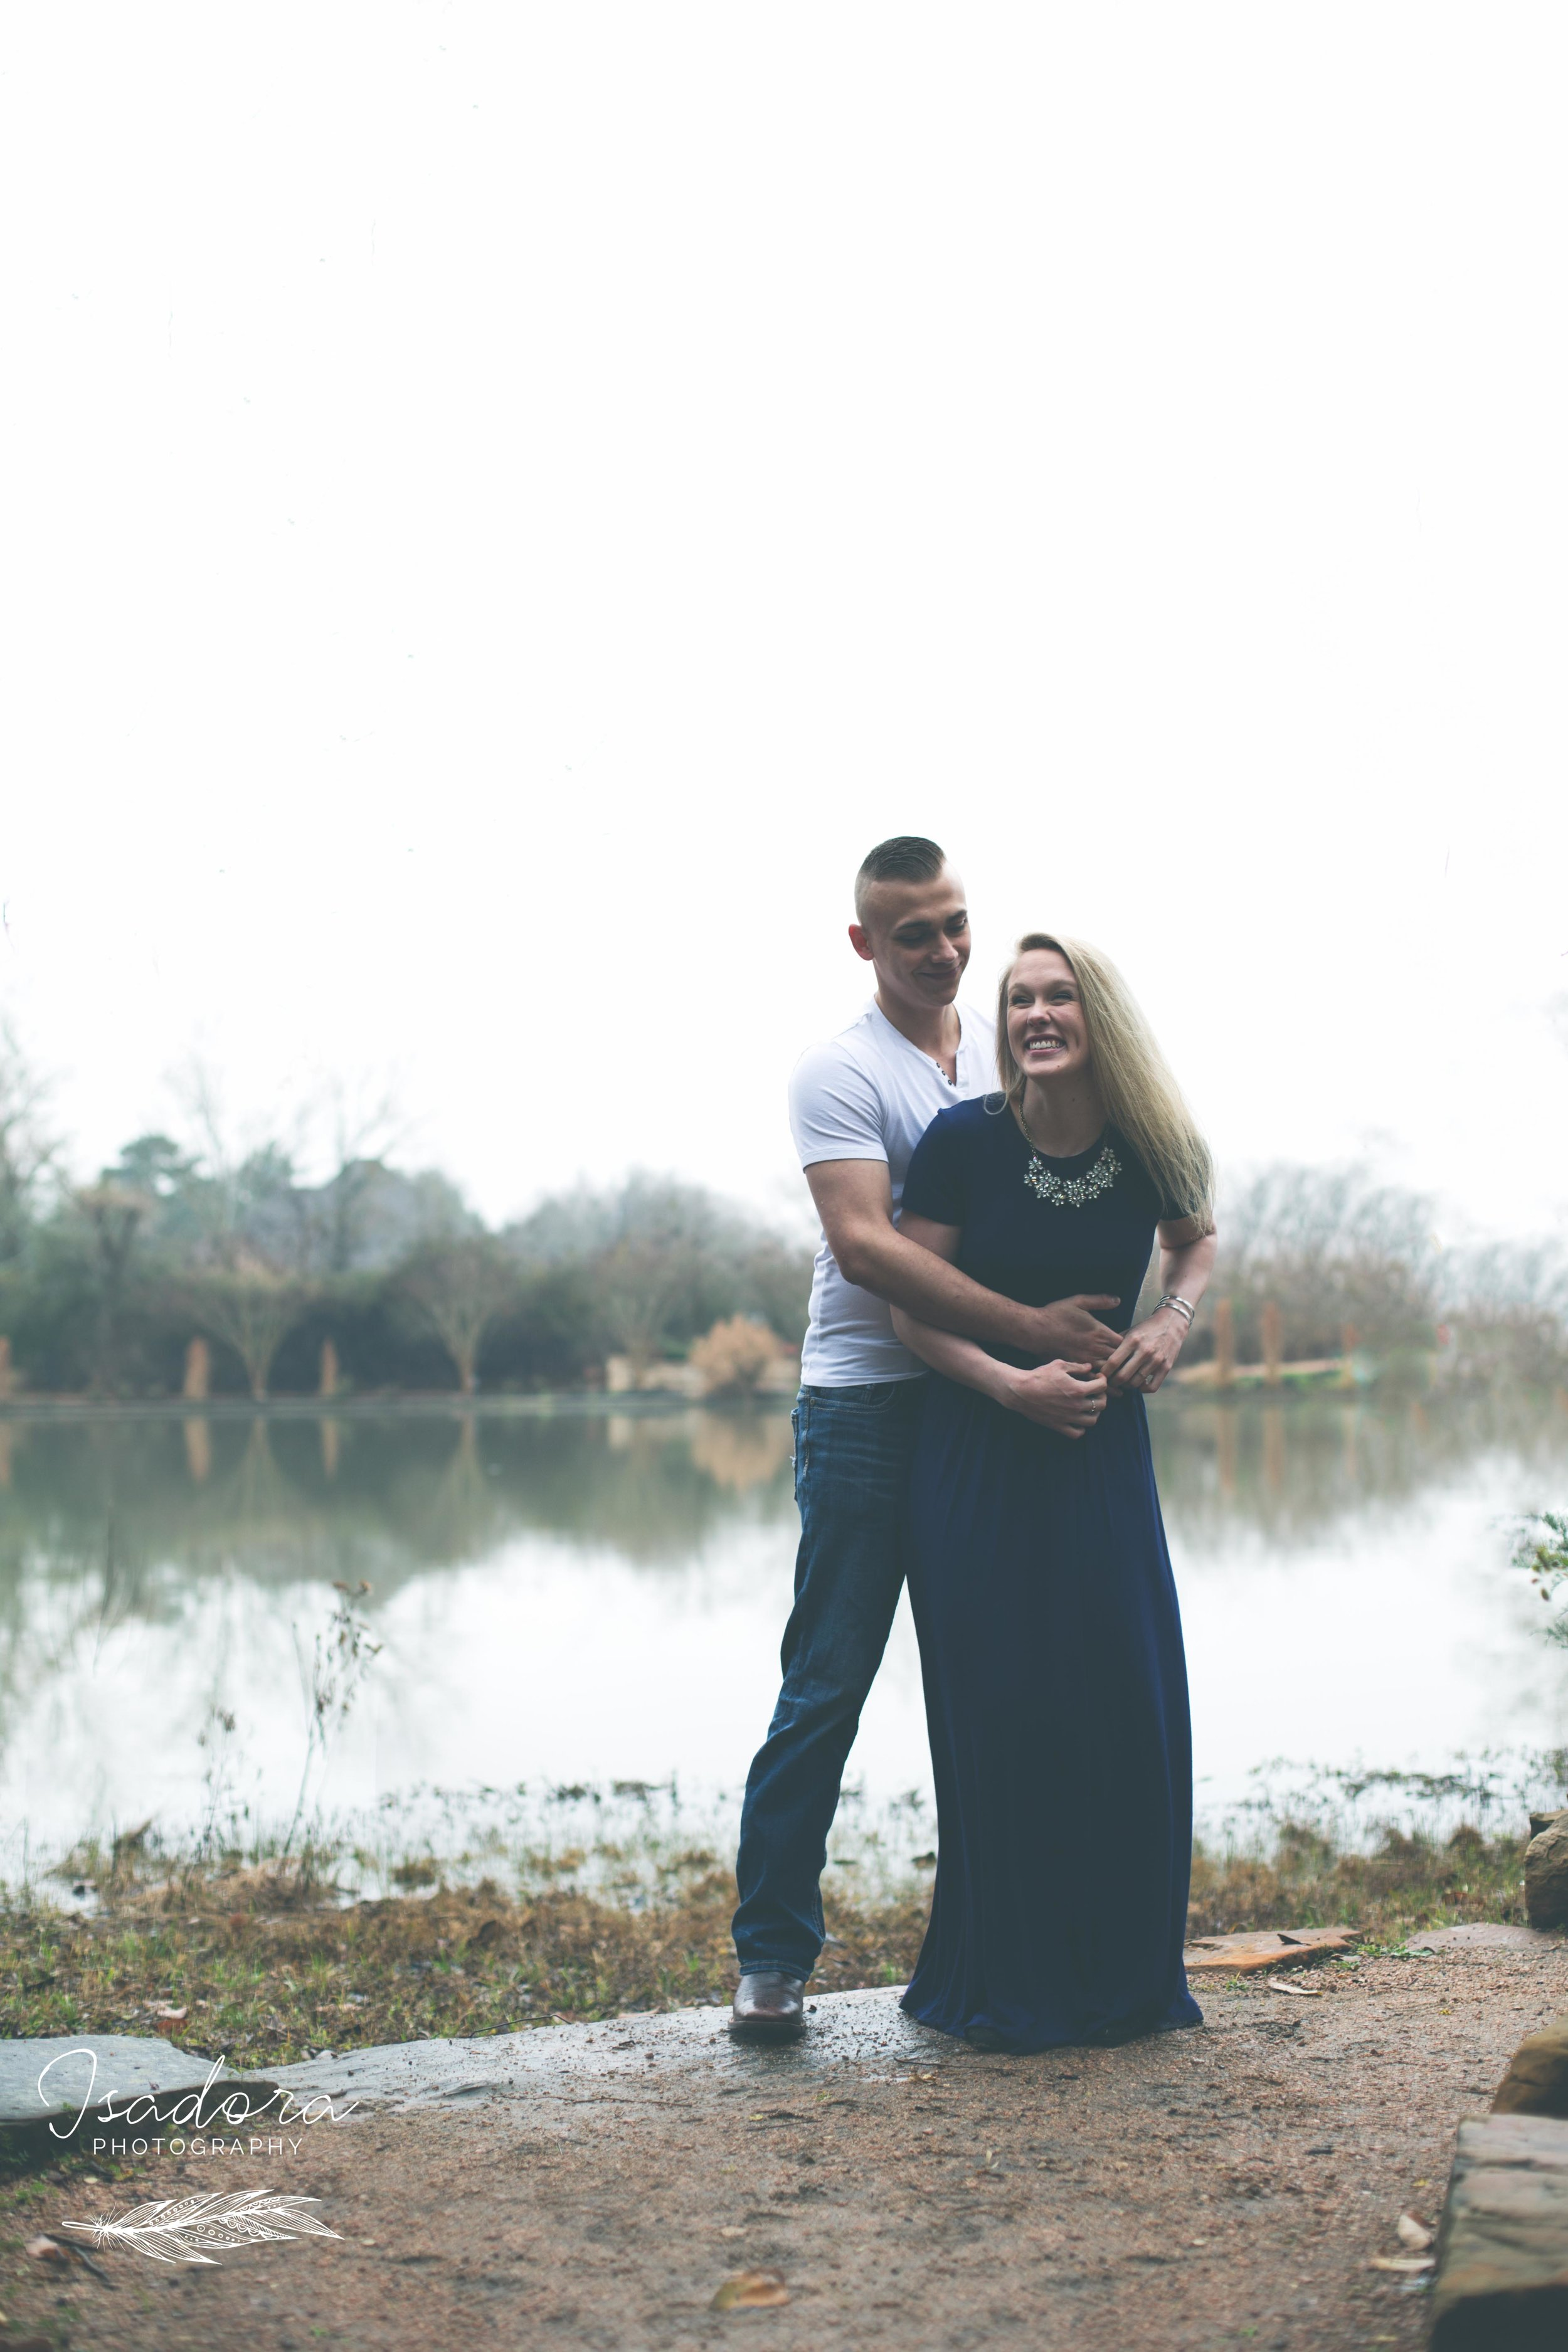 isadora_photography_SPRING_TX_14_LM_family_2018.jpg